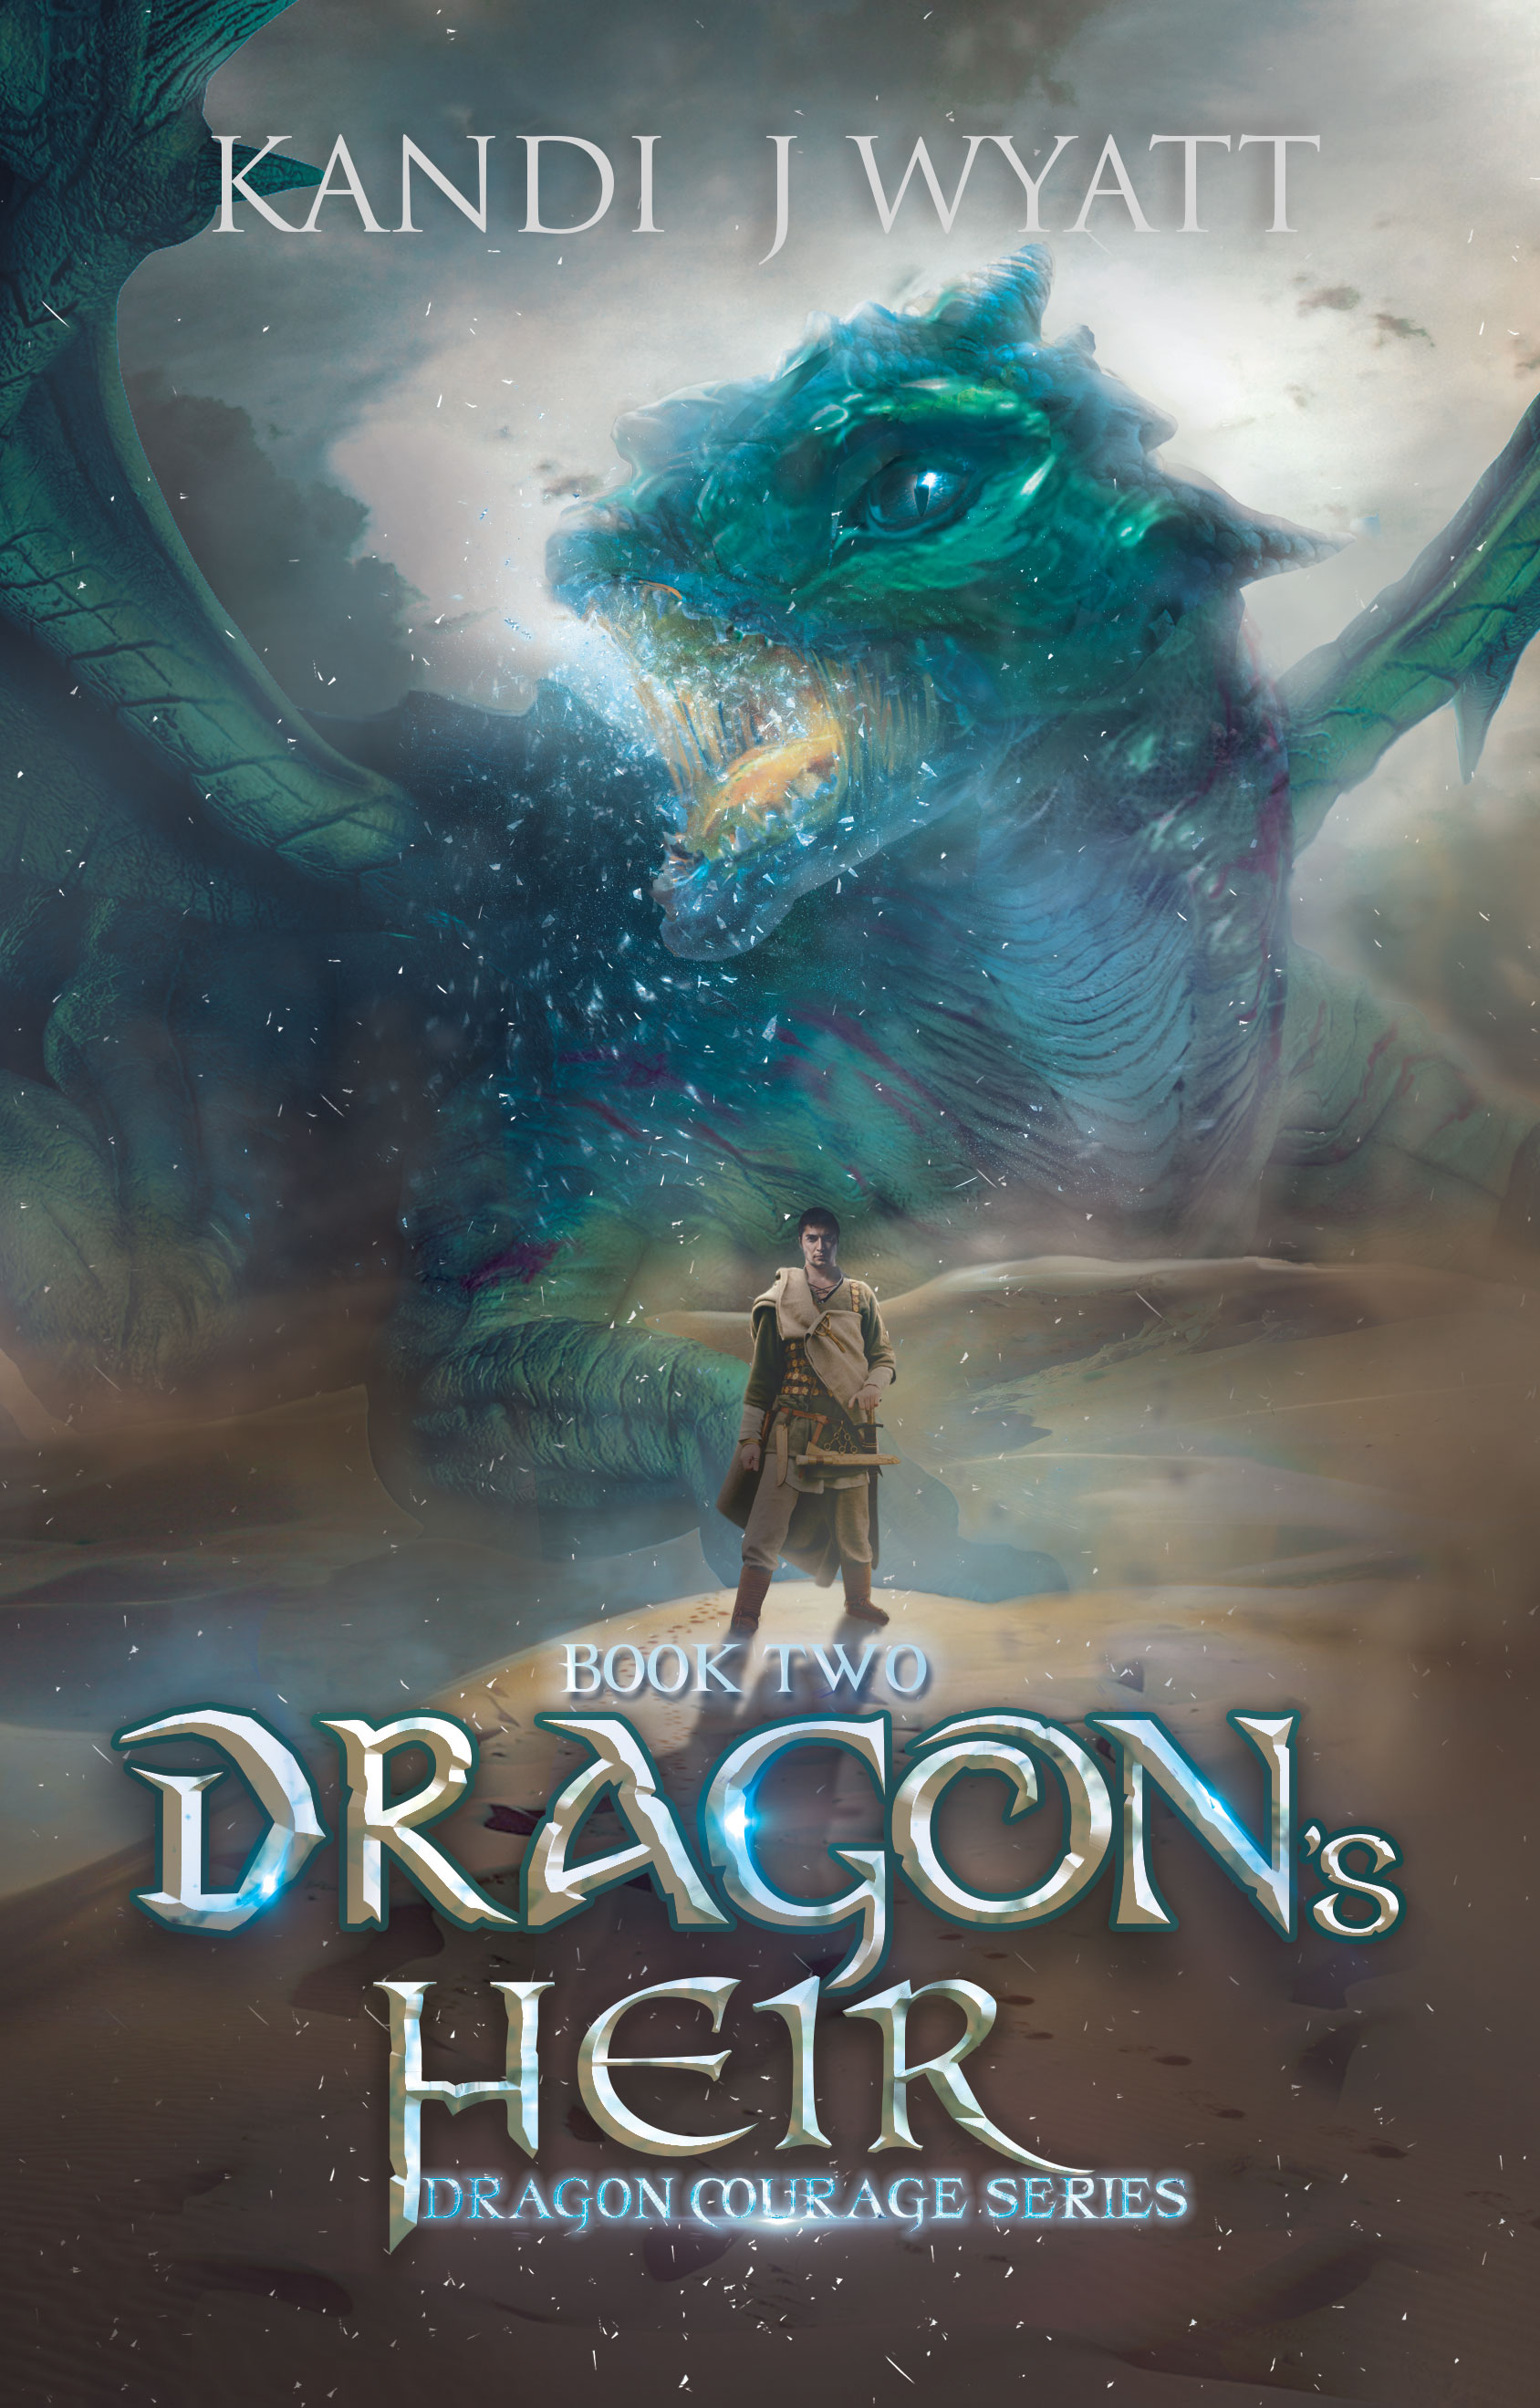 img=Dragon's Heir cover